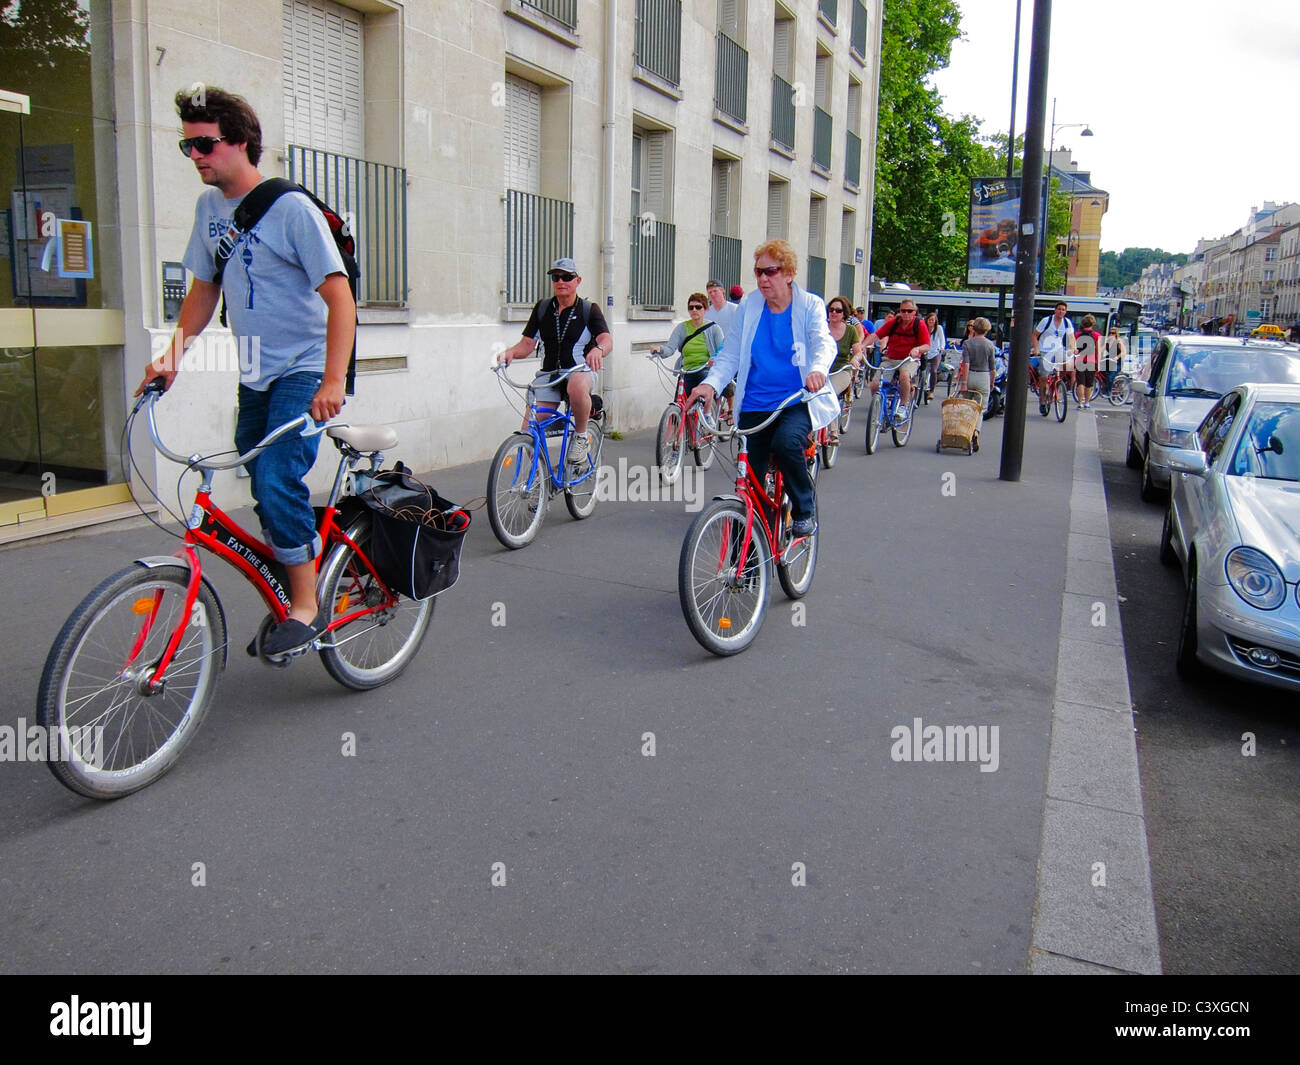 Versailles, France, Urban City Street Scenes, Group Cycling Tourists Riding Rented Bicycles bicycling on Sidewalk - Stock Image